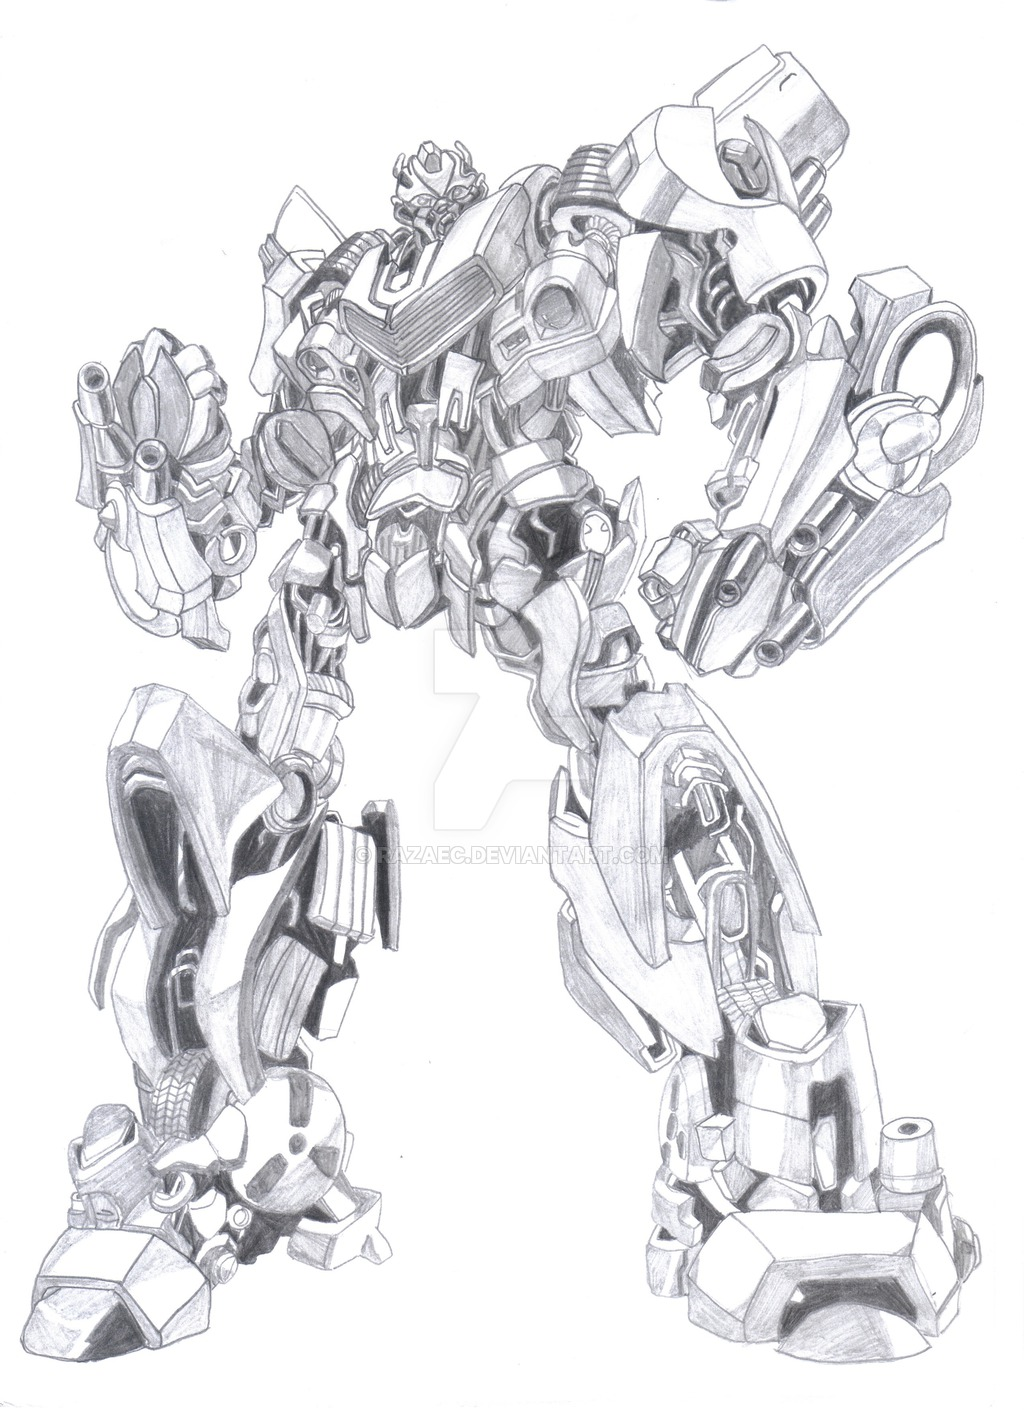 Drawn bumblebee transformers movie Drawing Transformers Drawing Realistic Transformers